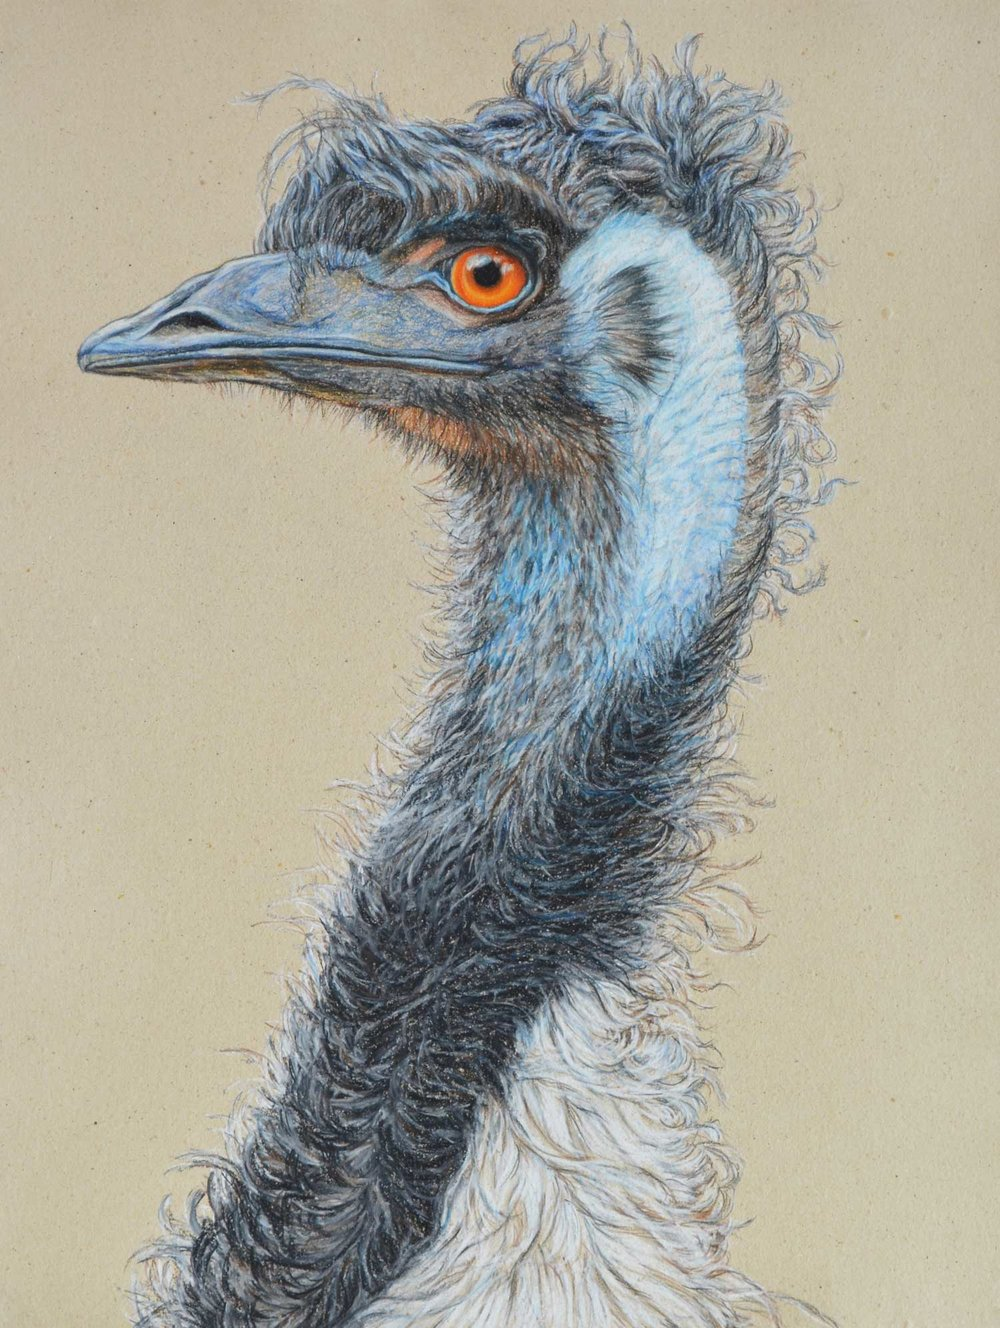 Emu Portrait  64.5 x 50 cm, pASTEL ON HANDMADE PAPER  Available as a limited edition print  $1,100